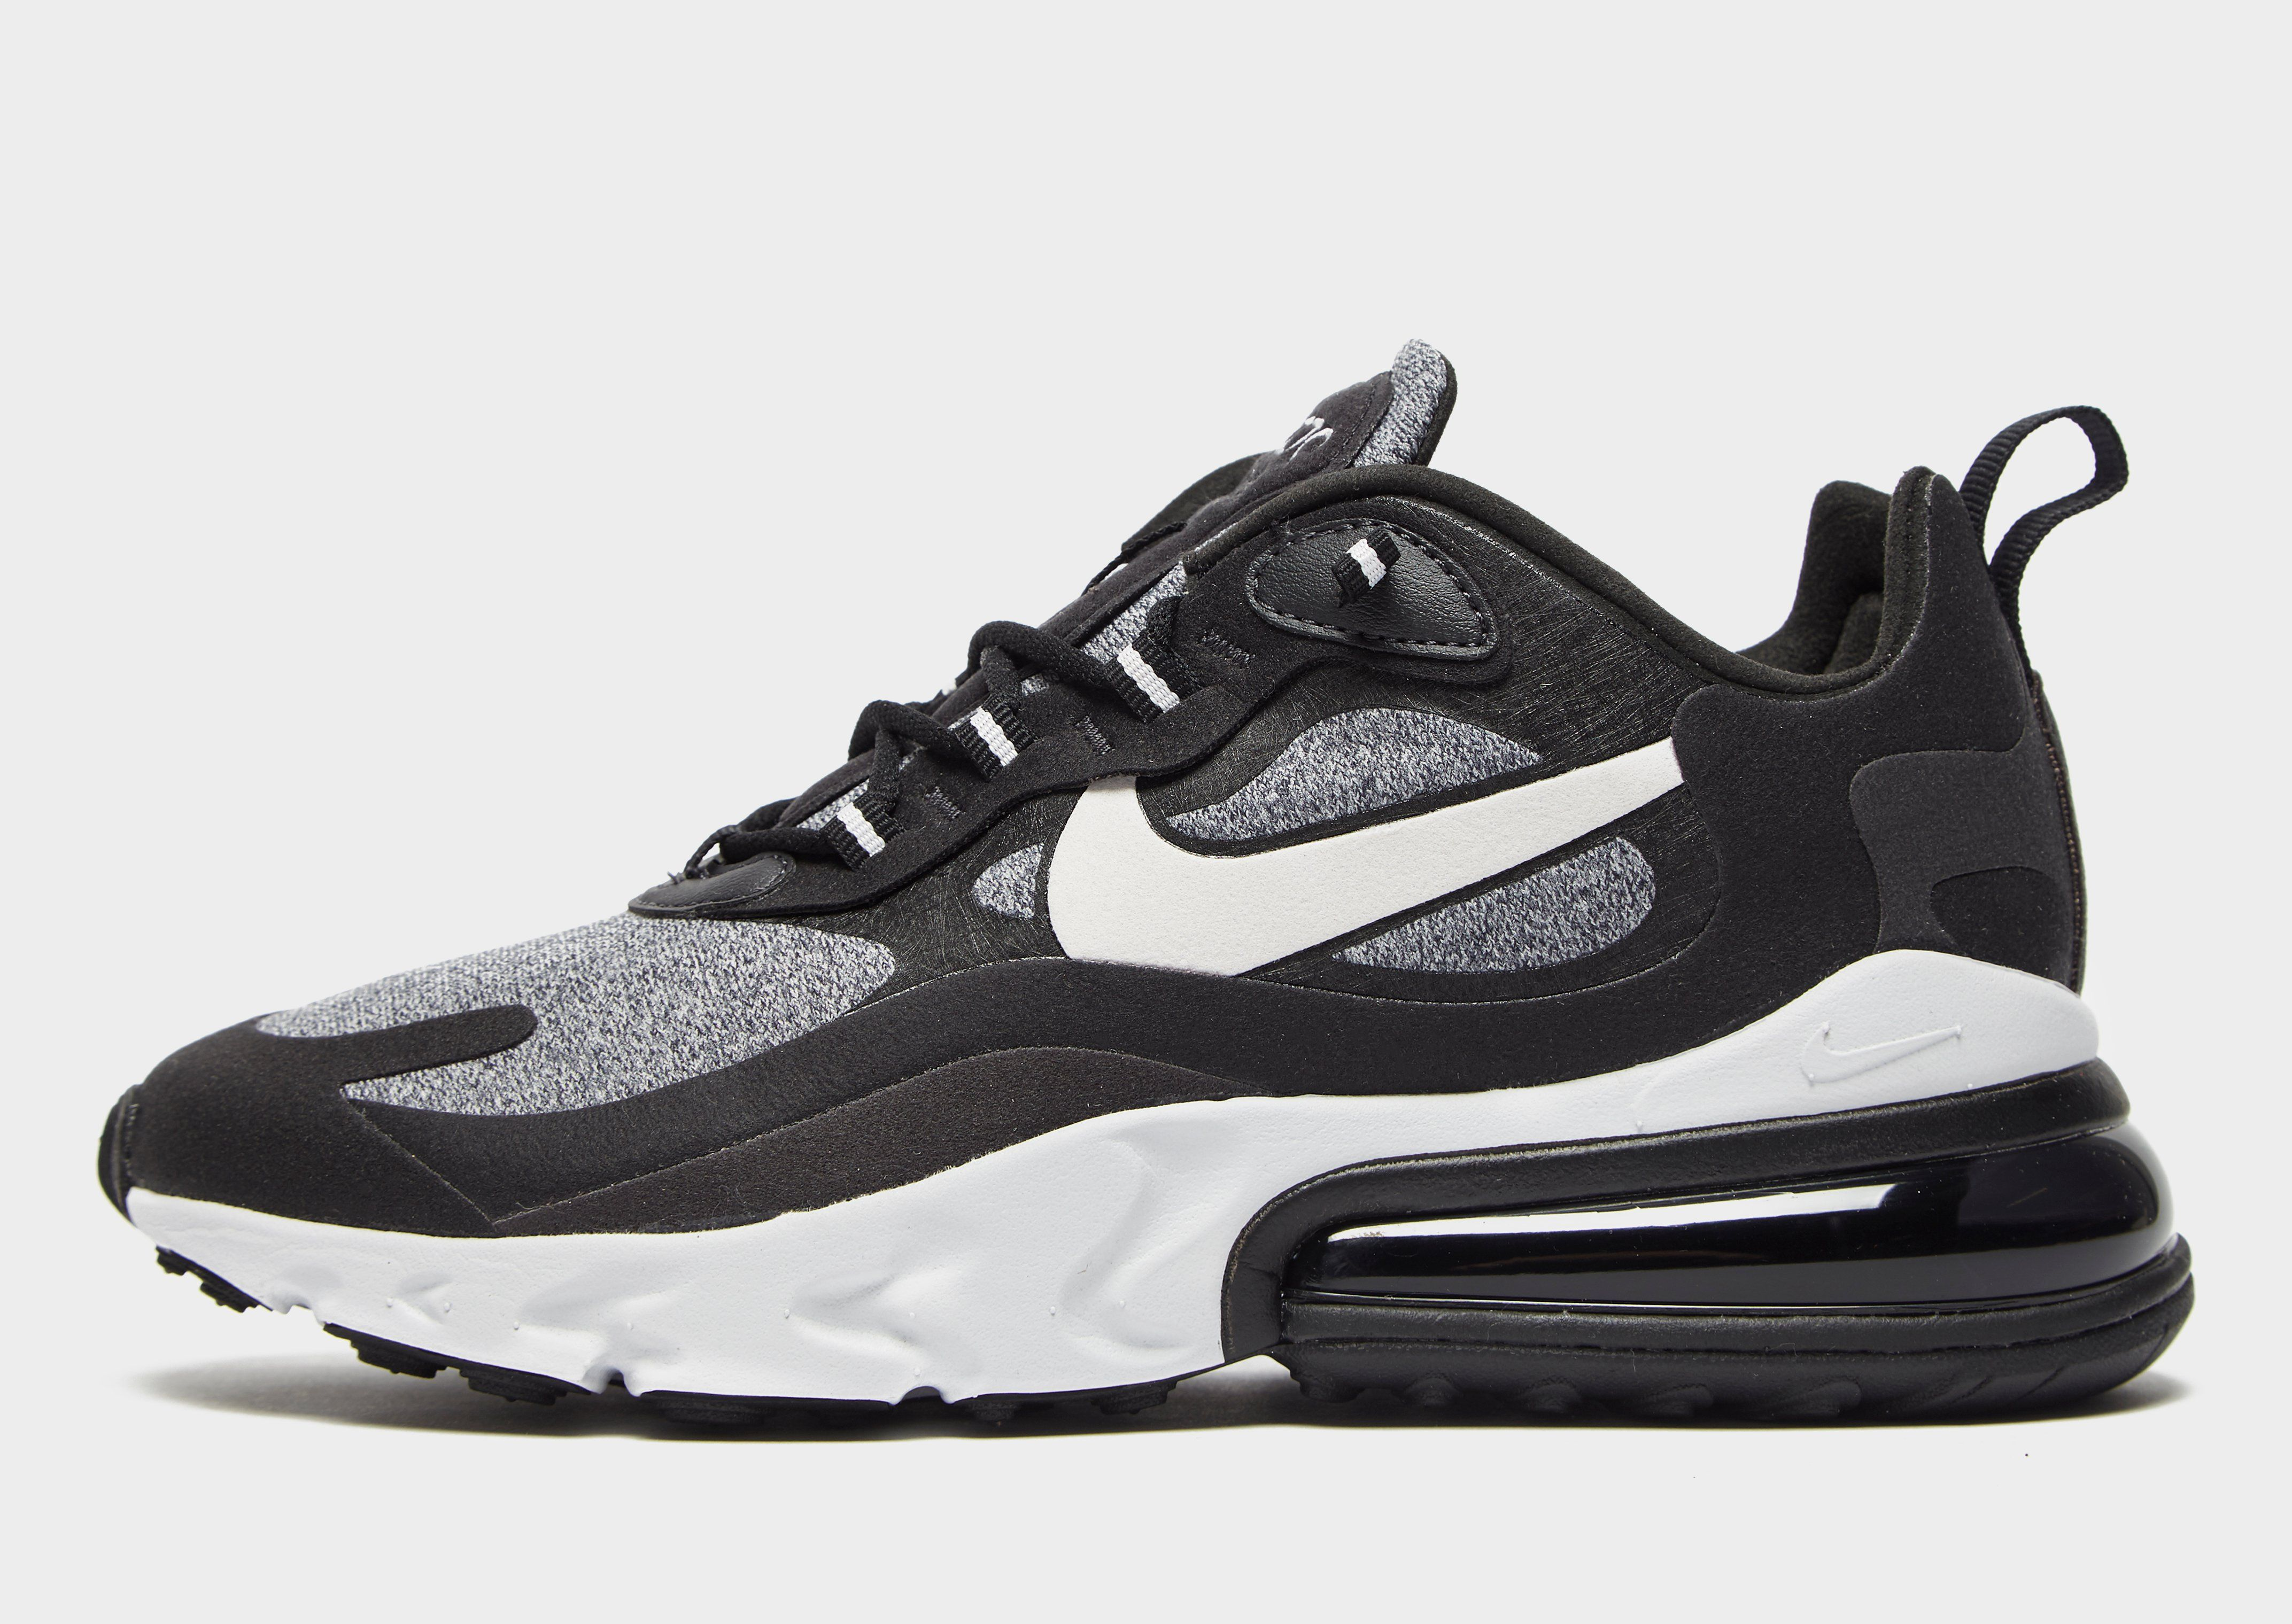 huge selection of c9a3f f48e6 Nike Air Max 270 React (Optical) Women's Shoe | JD Sports